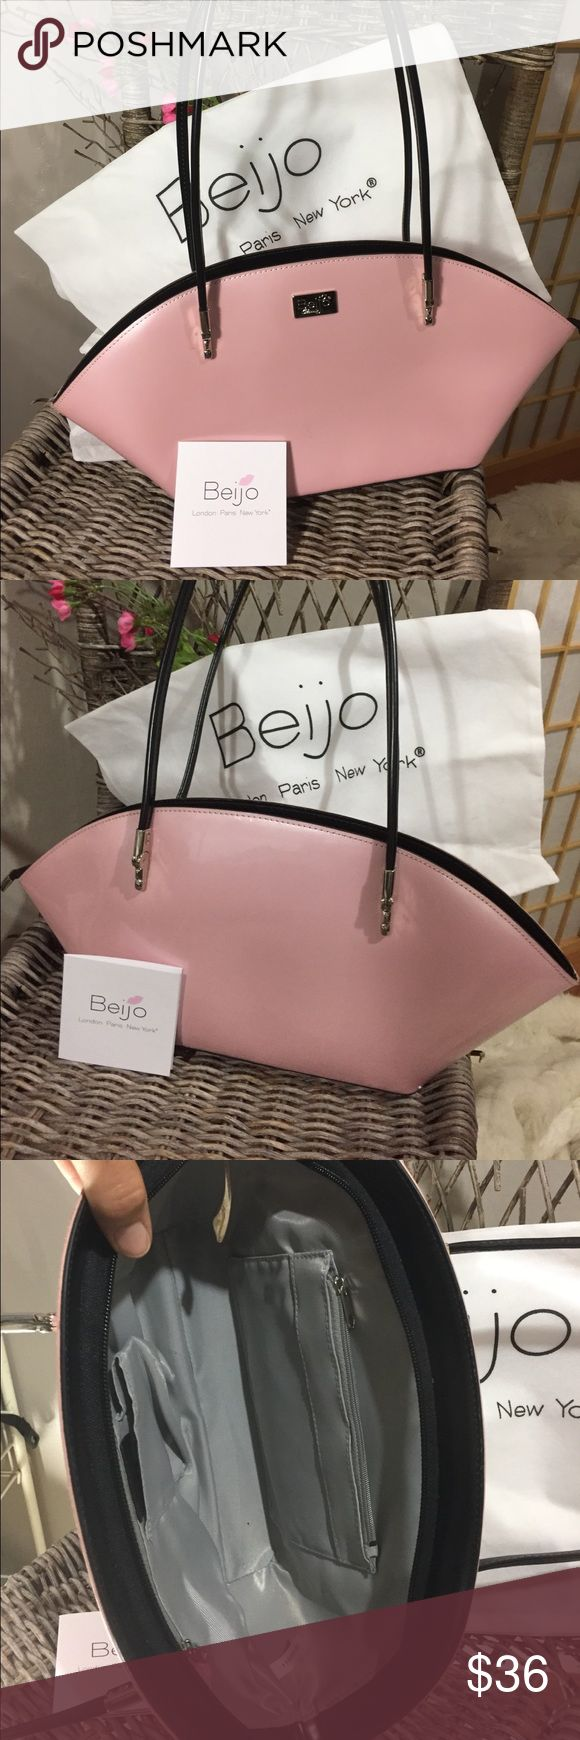 Beijo bag Brand new, never used from smoke free home. Included bag for storage. Light pink in color patent leather with black accents. Measures 16 at widest and is approximately 7 high with the handle measuring 27 beijo Bags Shoulder Bags